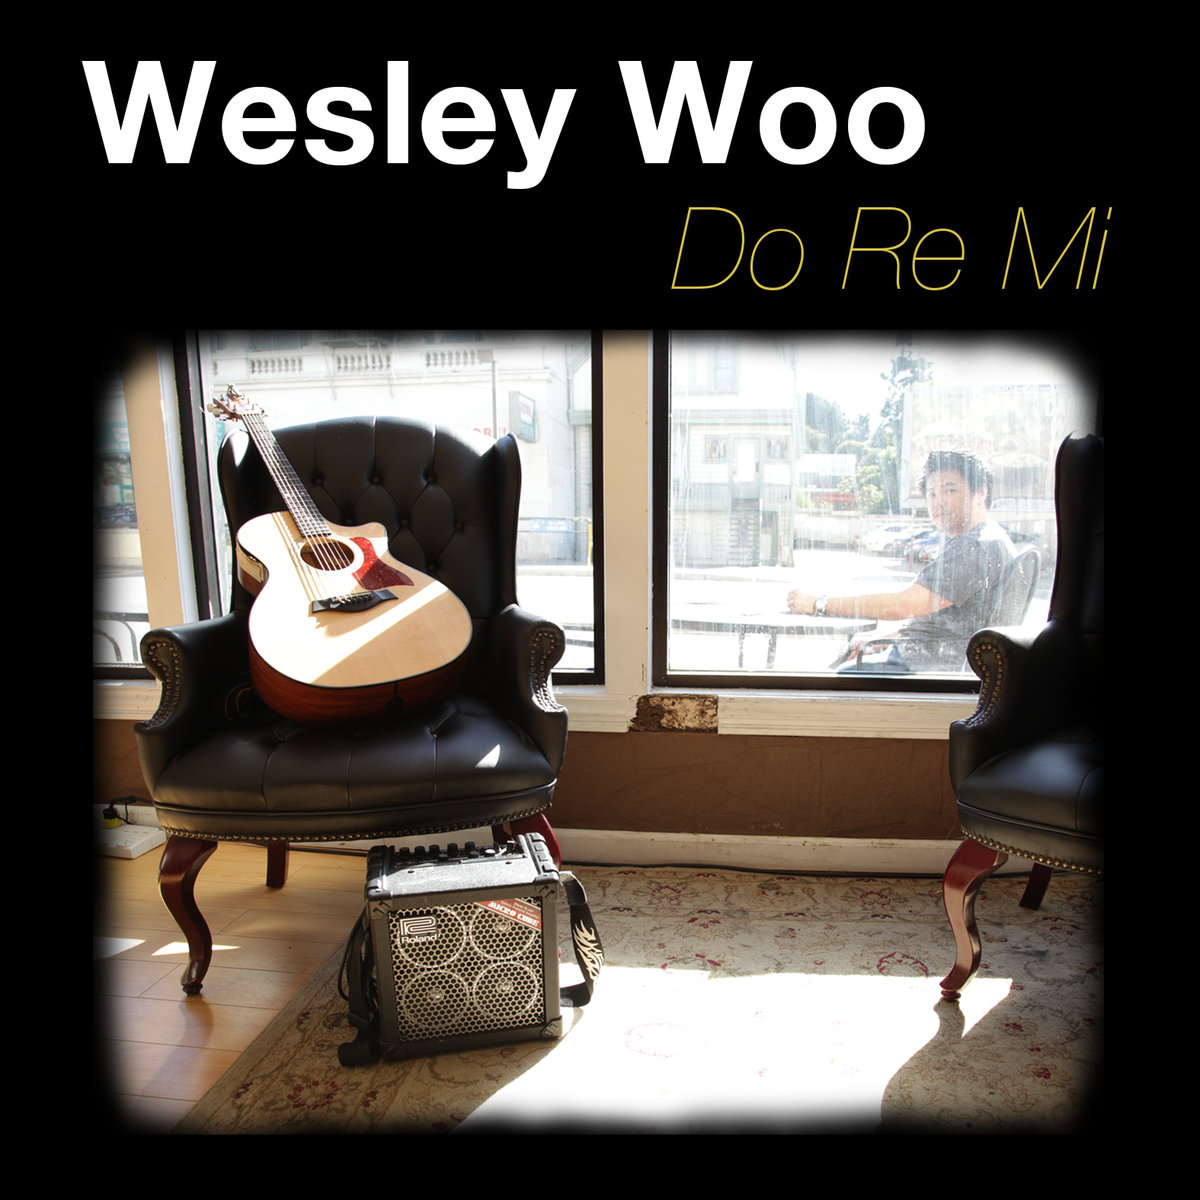 Wesley Woo - Fate to Make @ 'Do Re Mi' album (11th ave records, 11th avenue records)